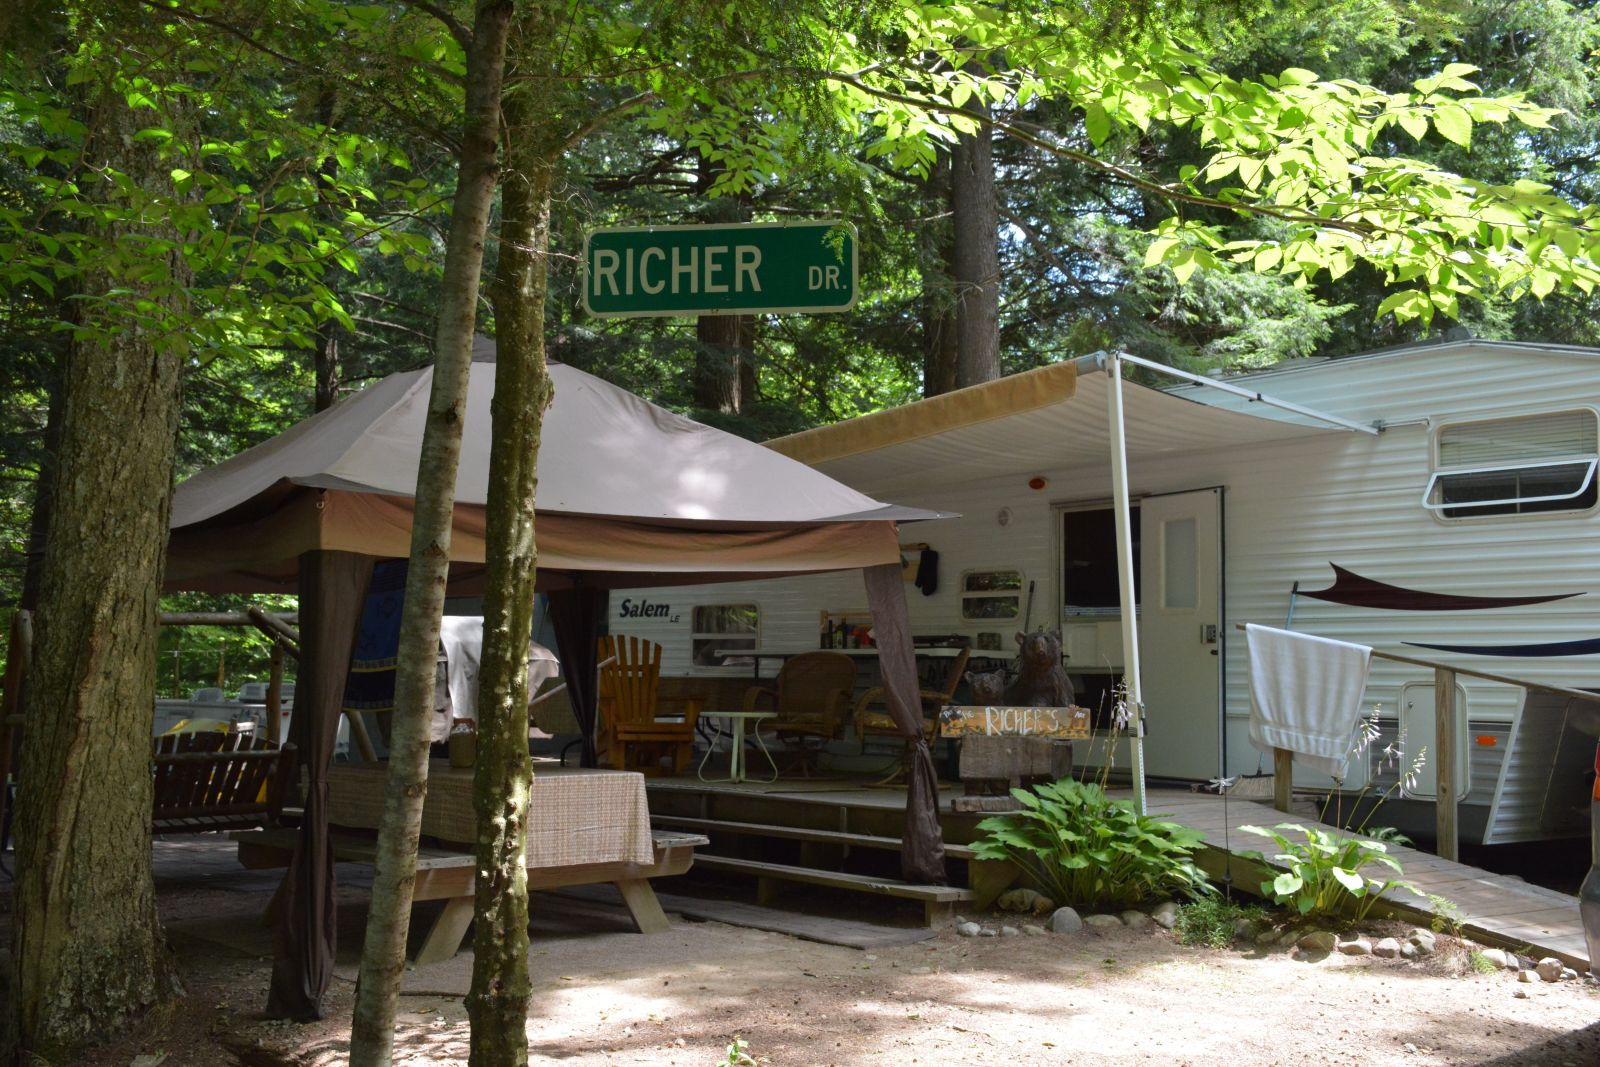 These campers who have strong Tupper Lake roots have made their site their home away from home.